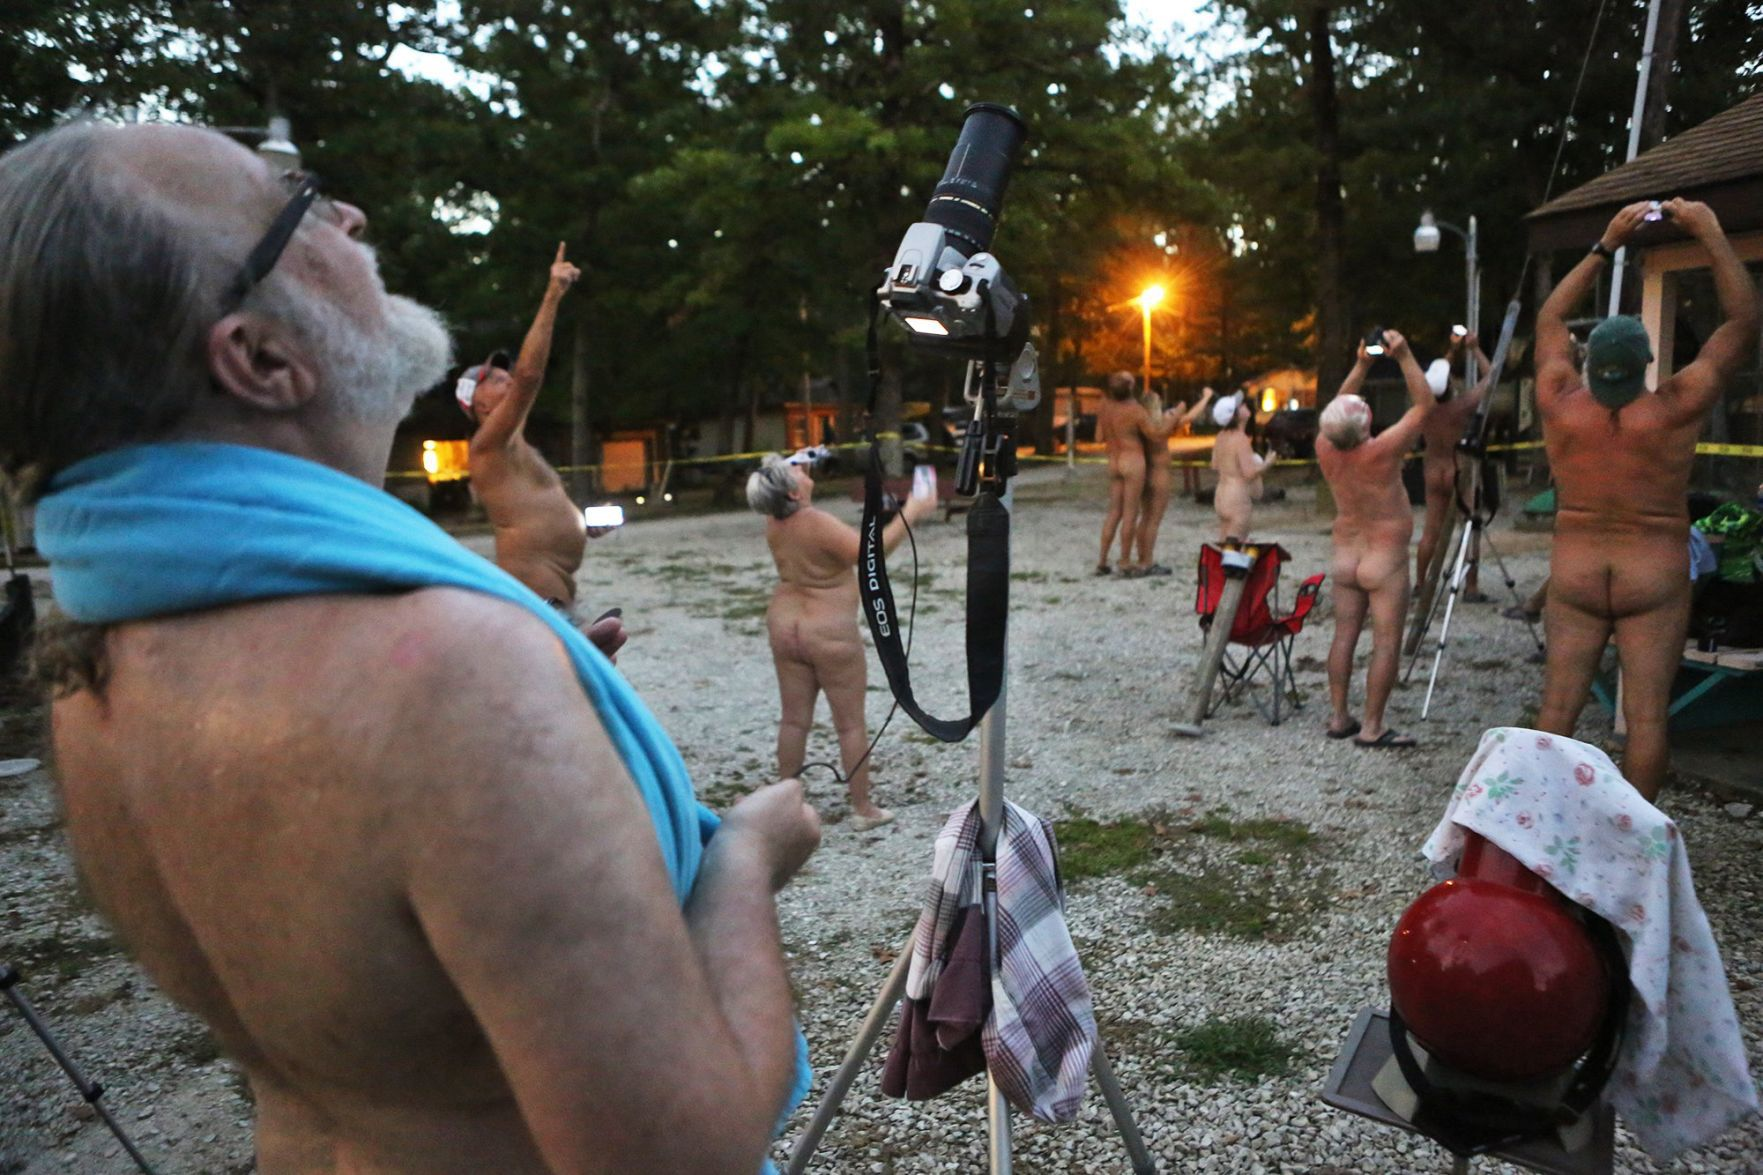 Nudist colony just for old people